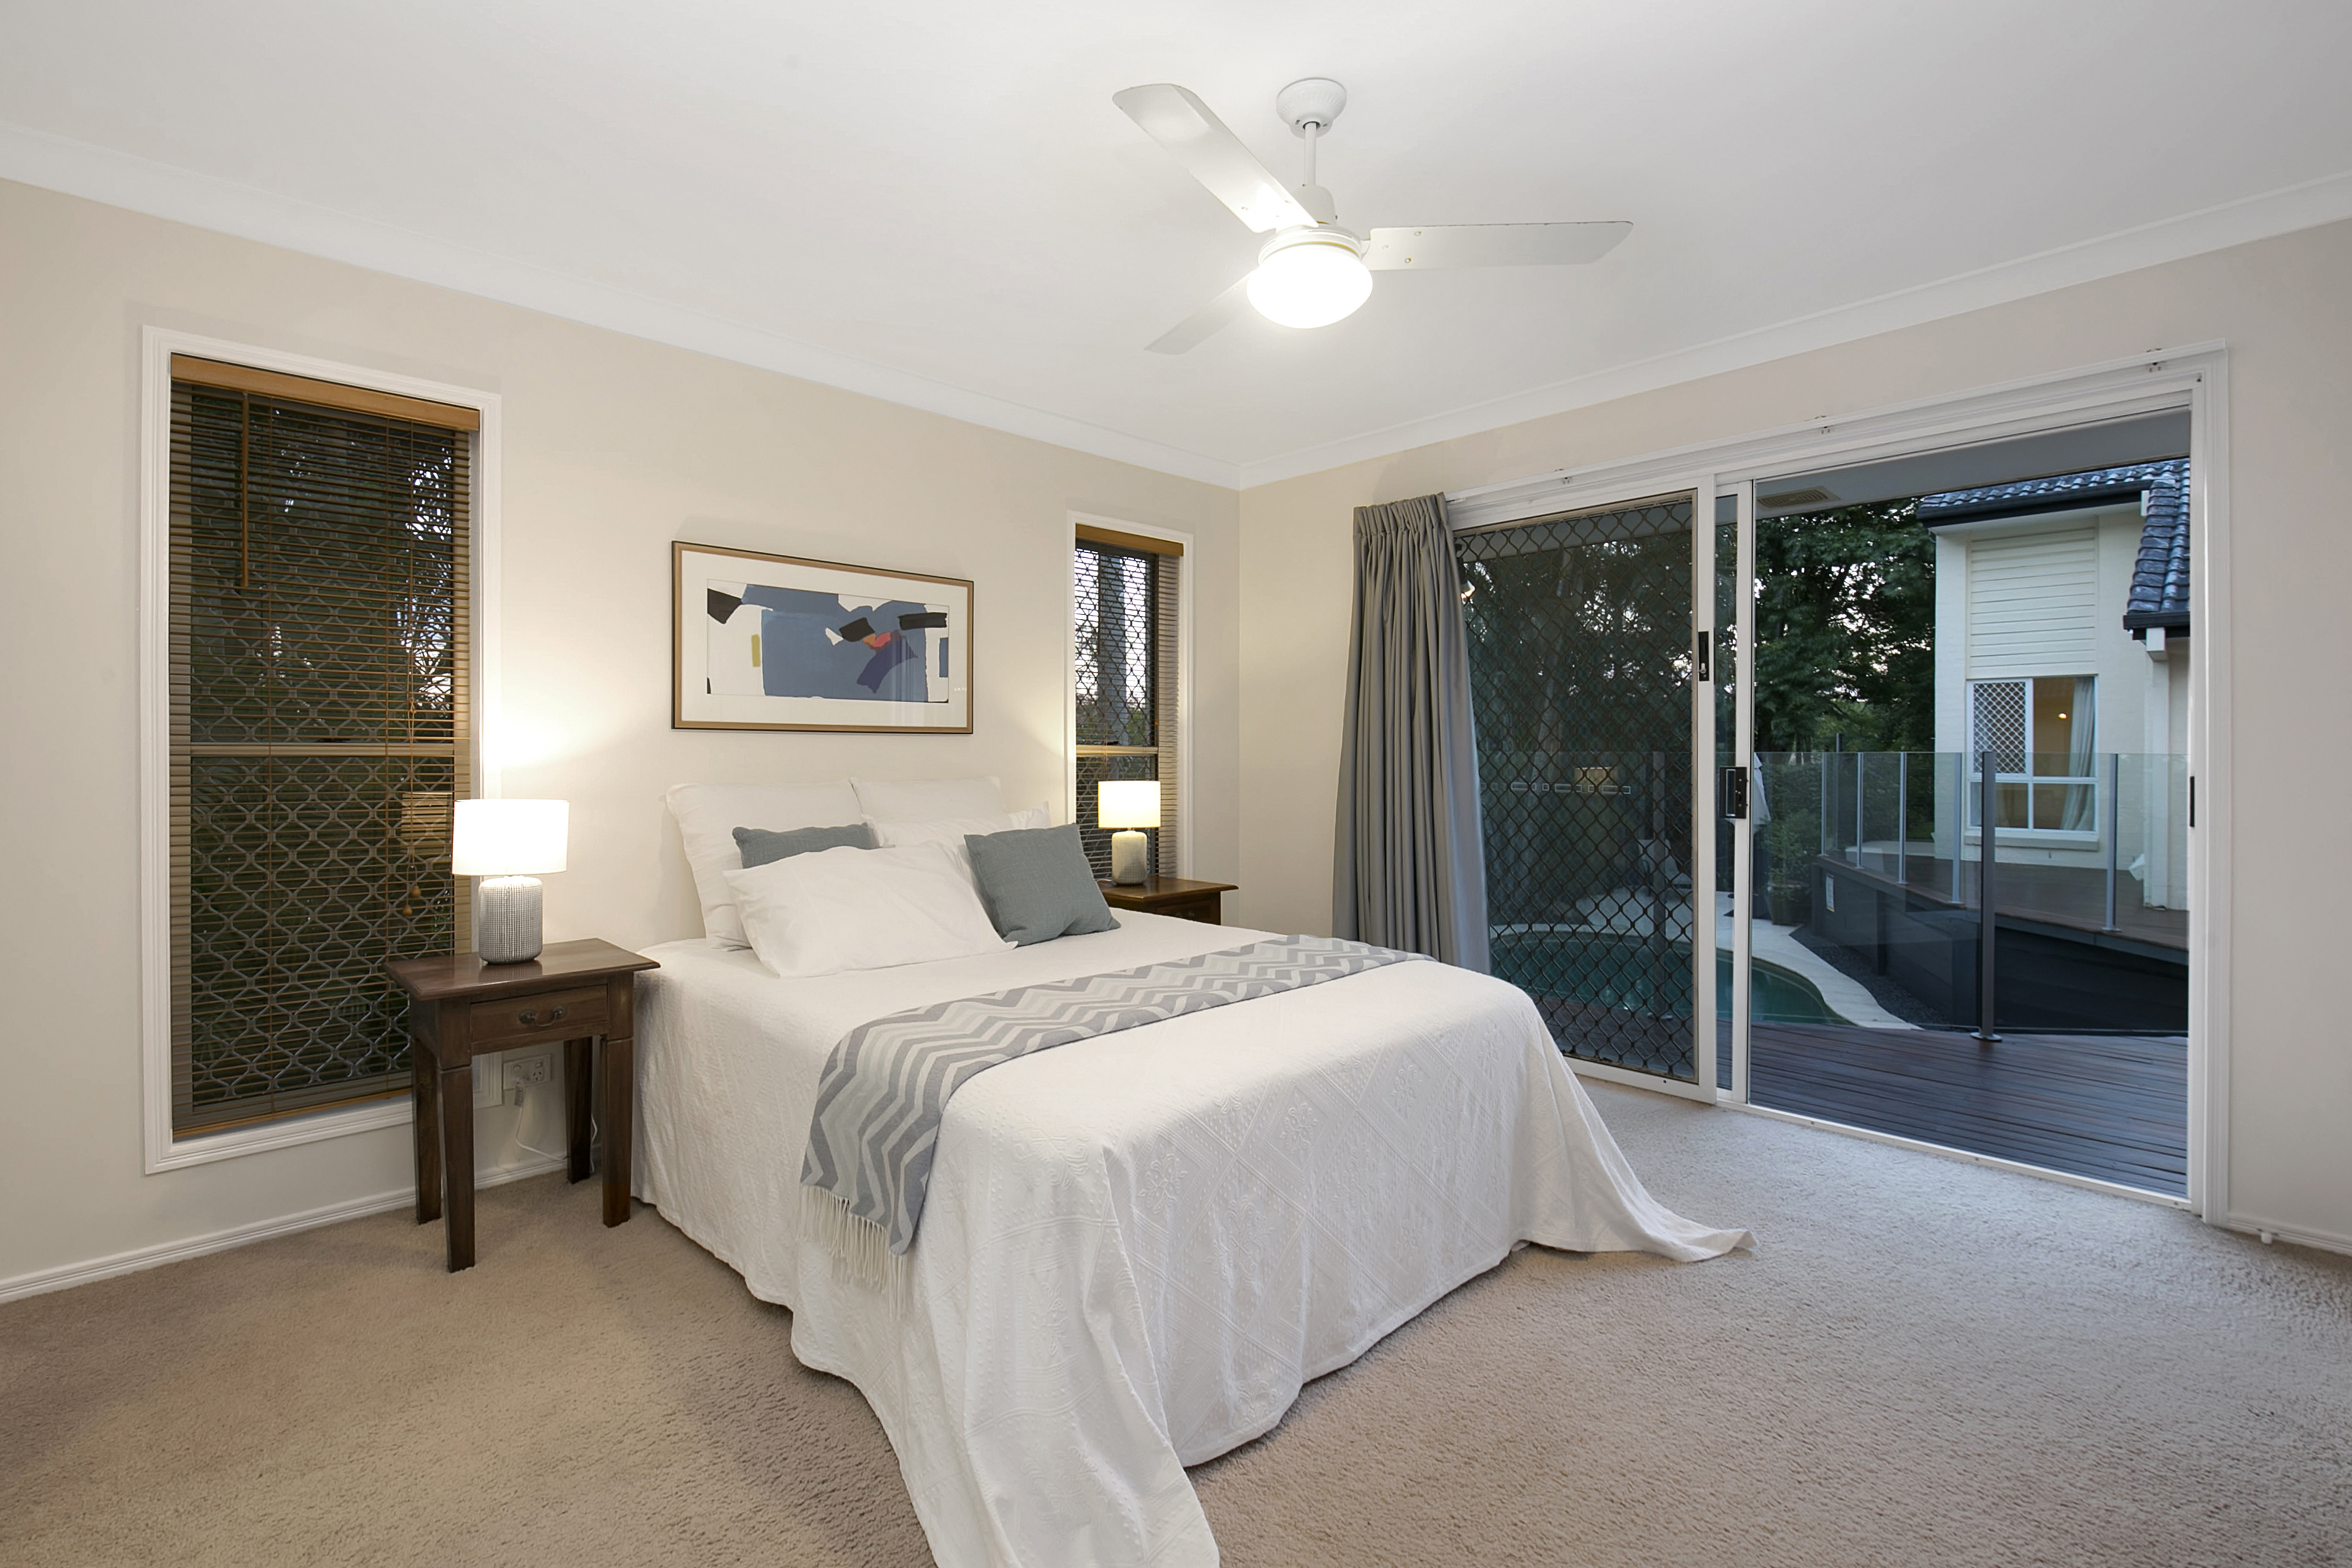 12 Ringway Place, Chapel Hill bedroom